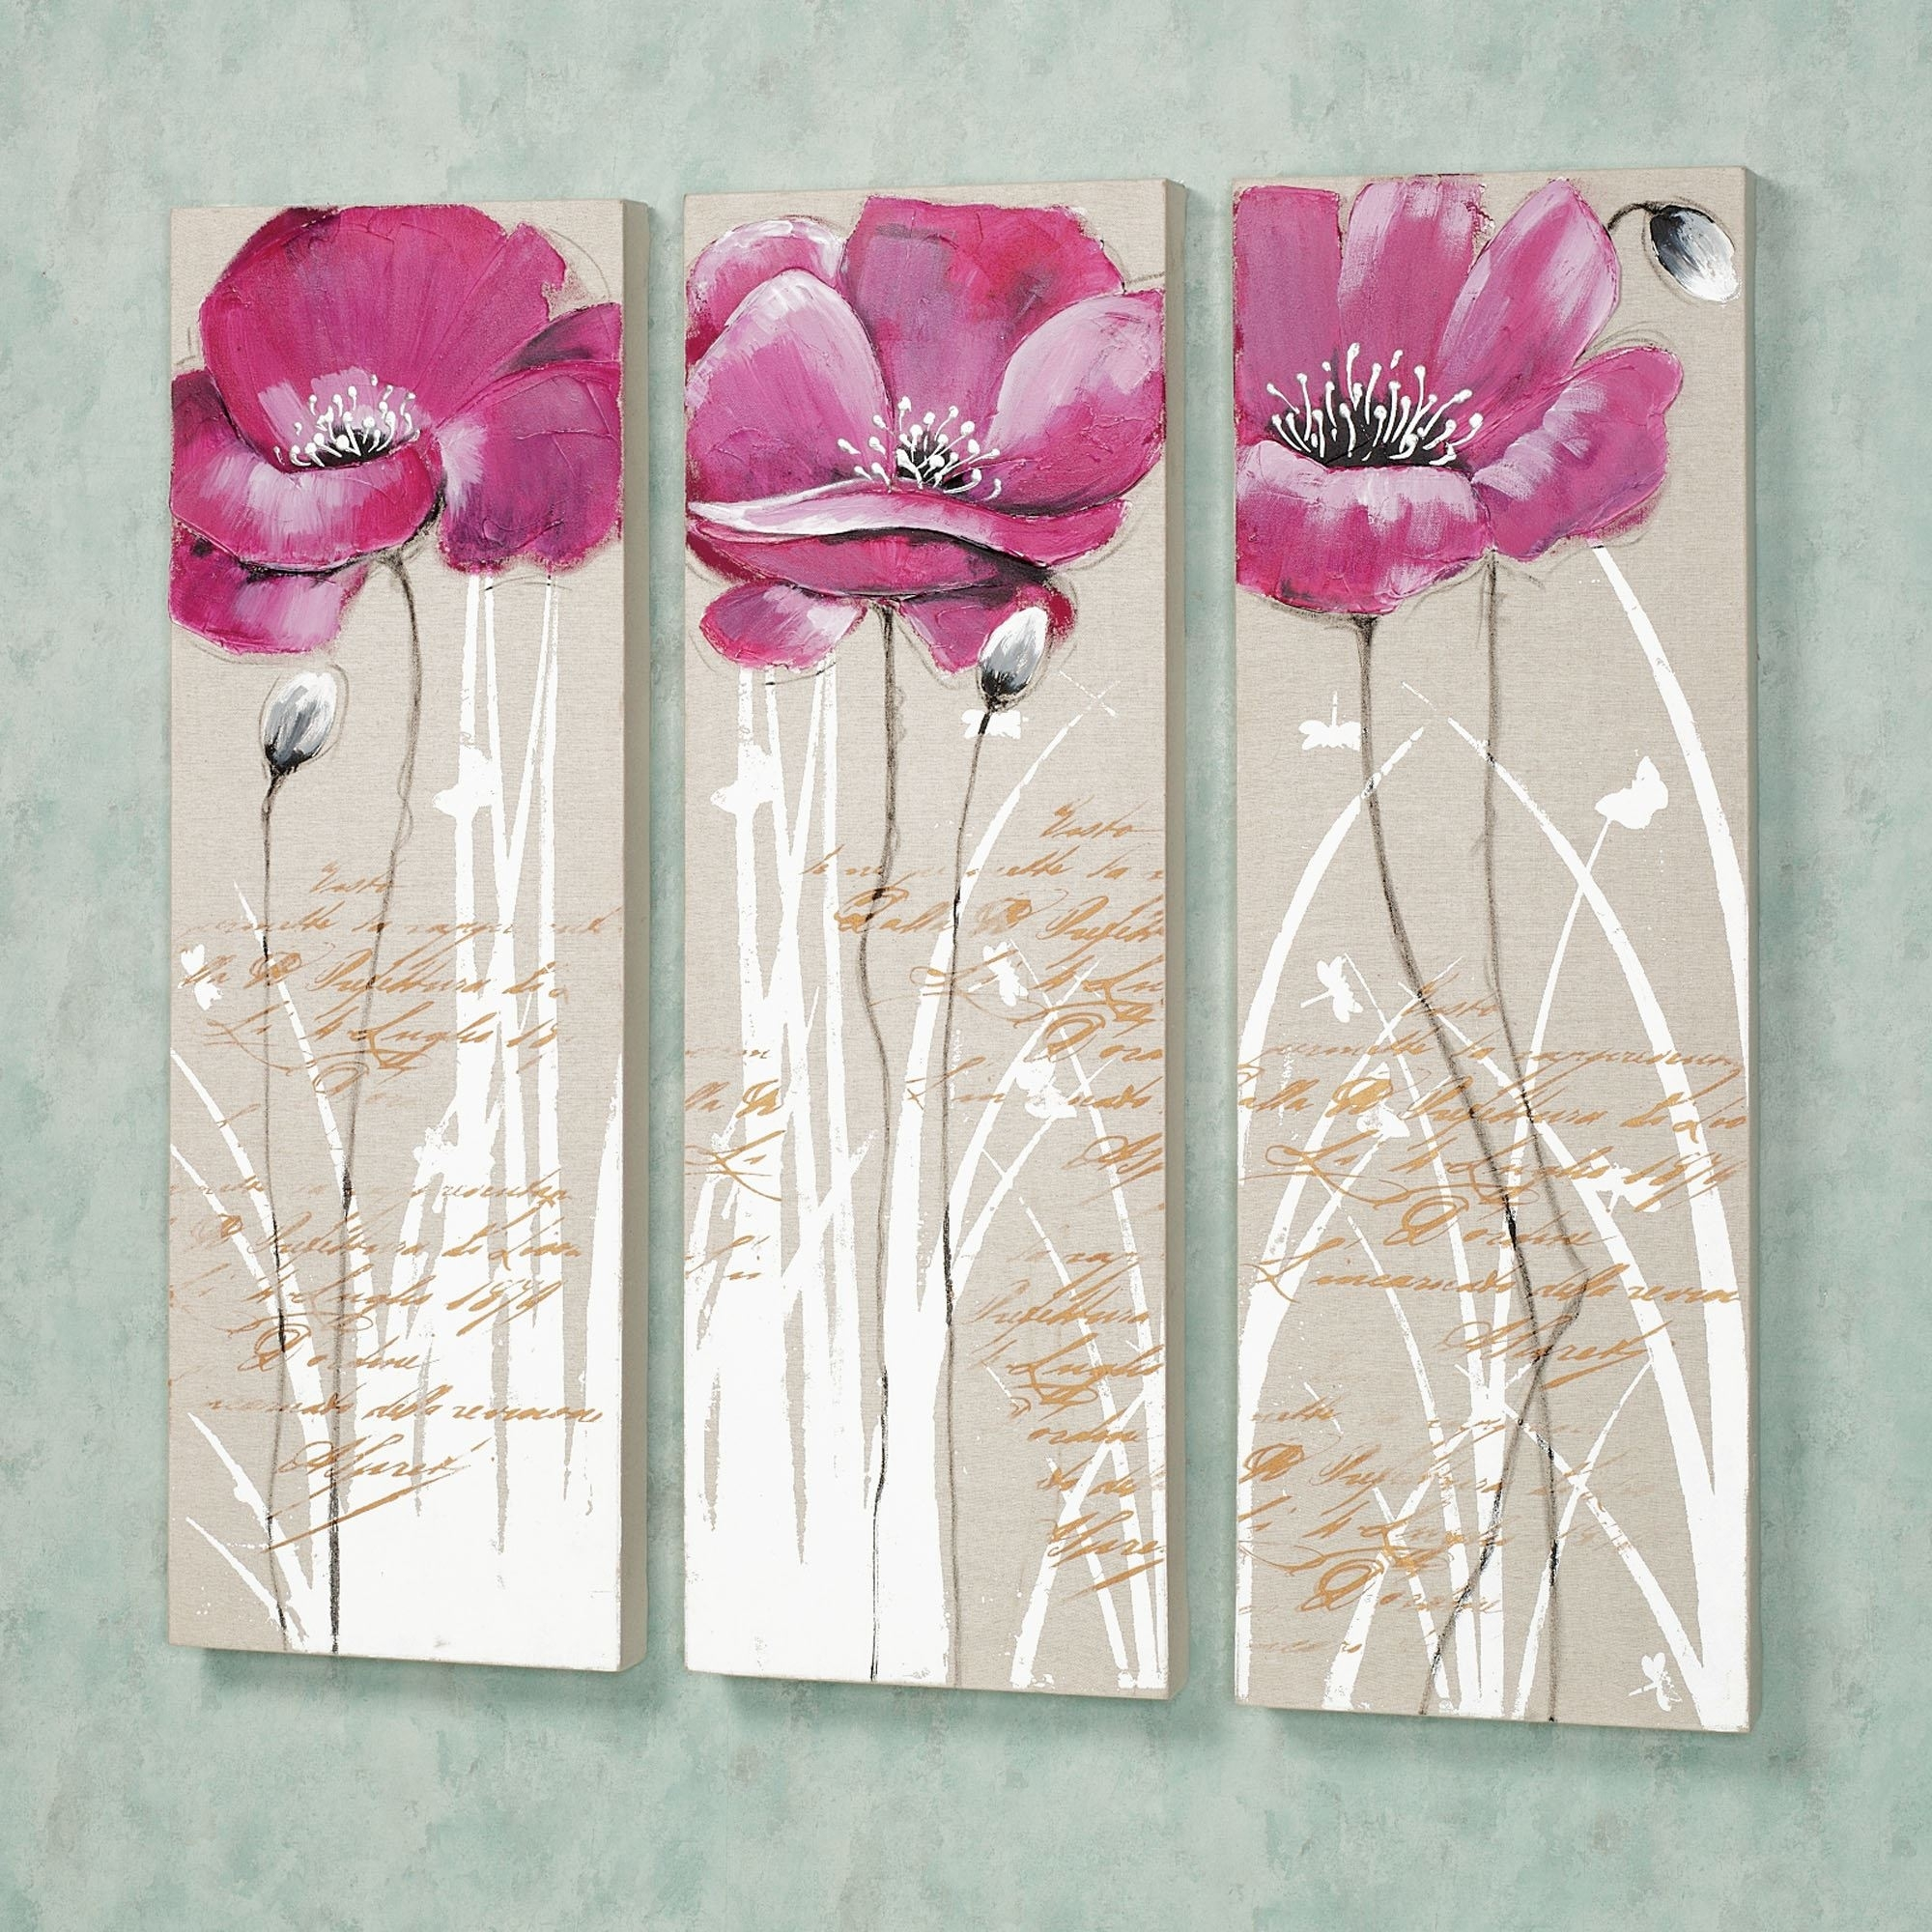 Floral And Botanical Canvas Wall Art | Touch Of Class Inside Most Recent Poppies Canvas Wall Art (View 5 of 15)